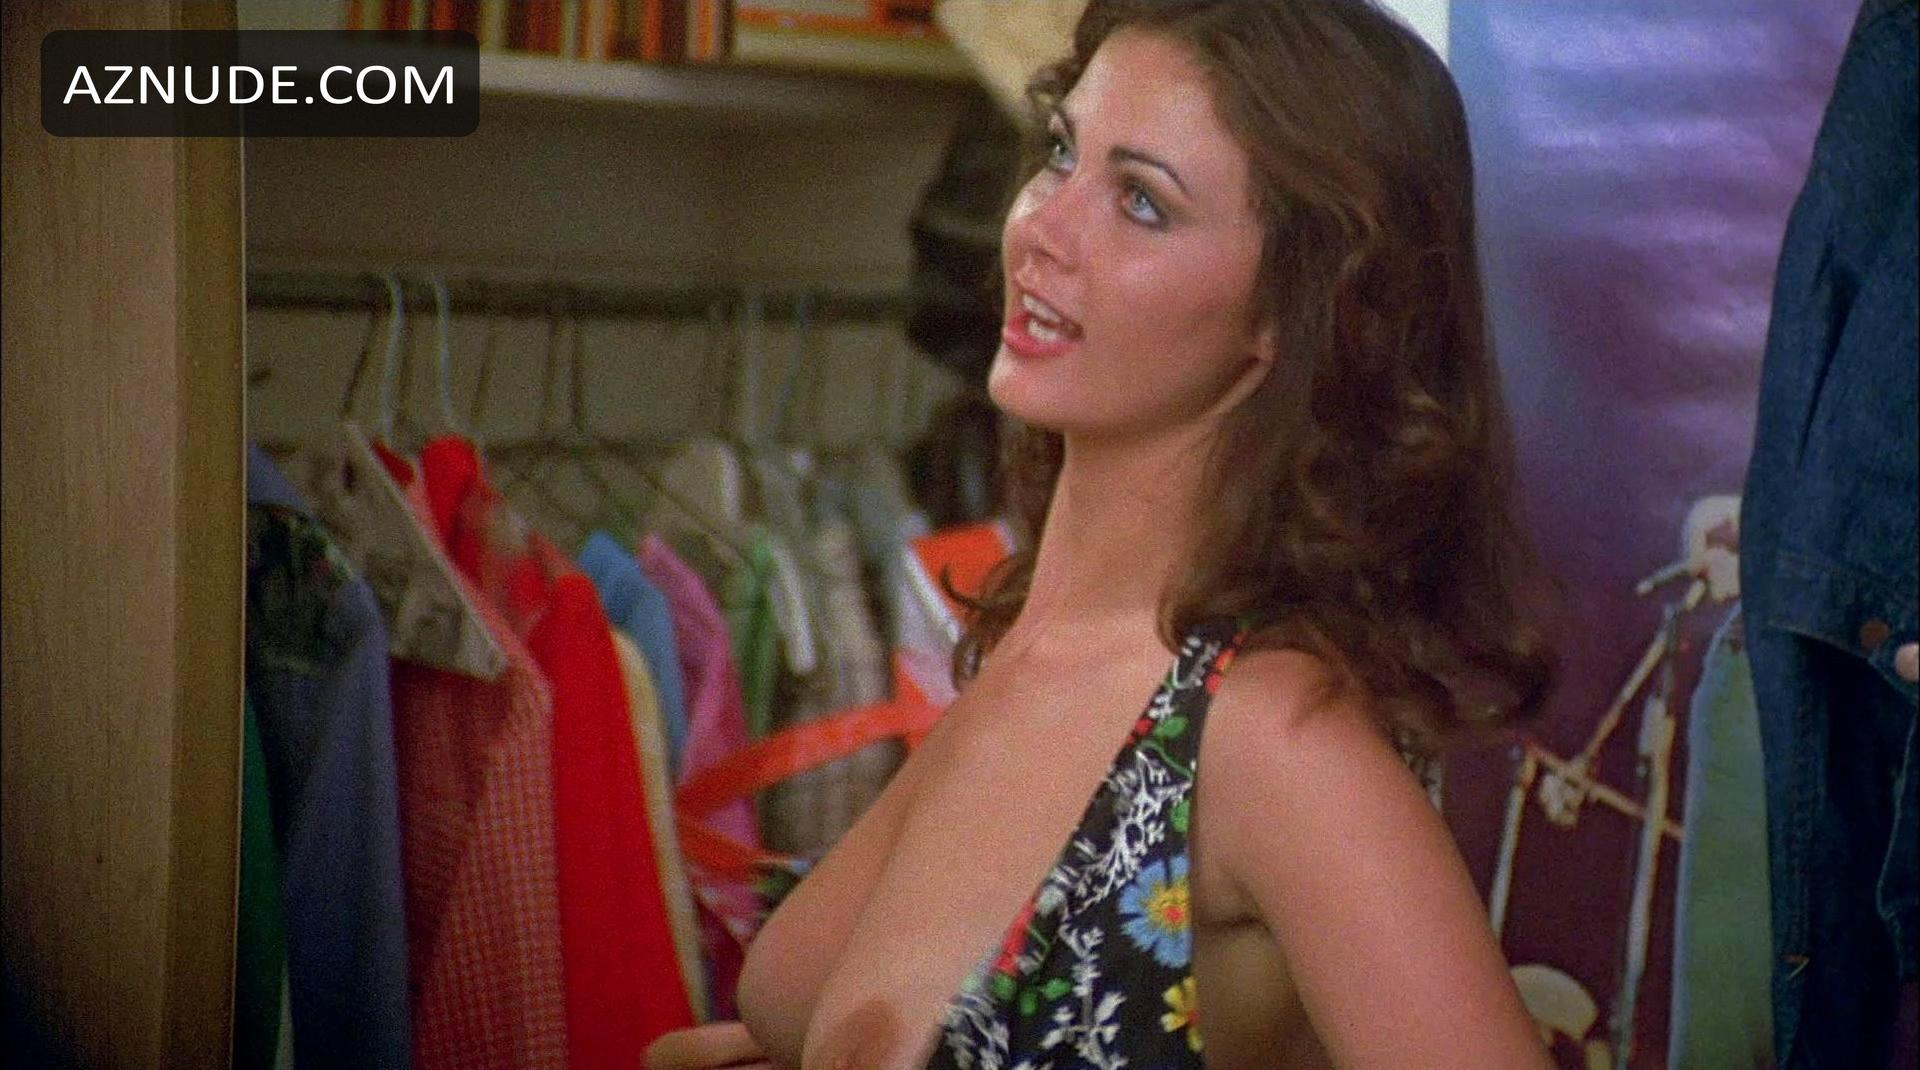 Linda carter nude tits and thought